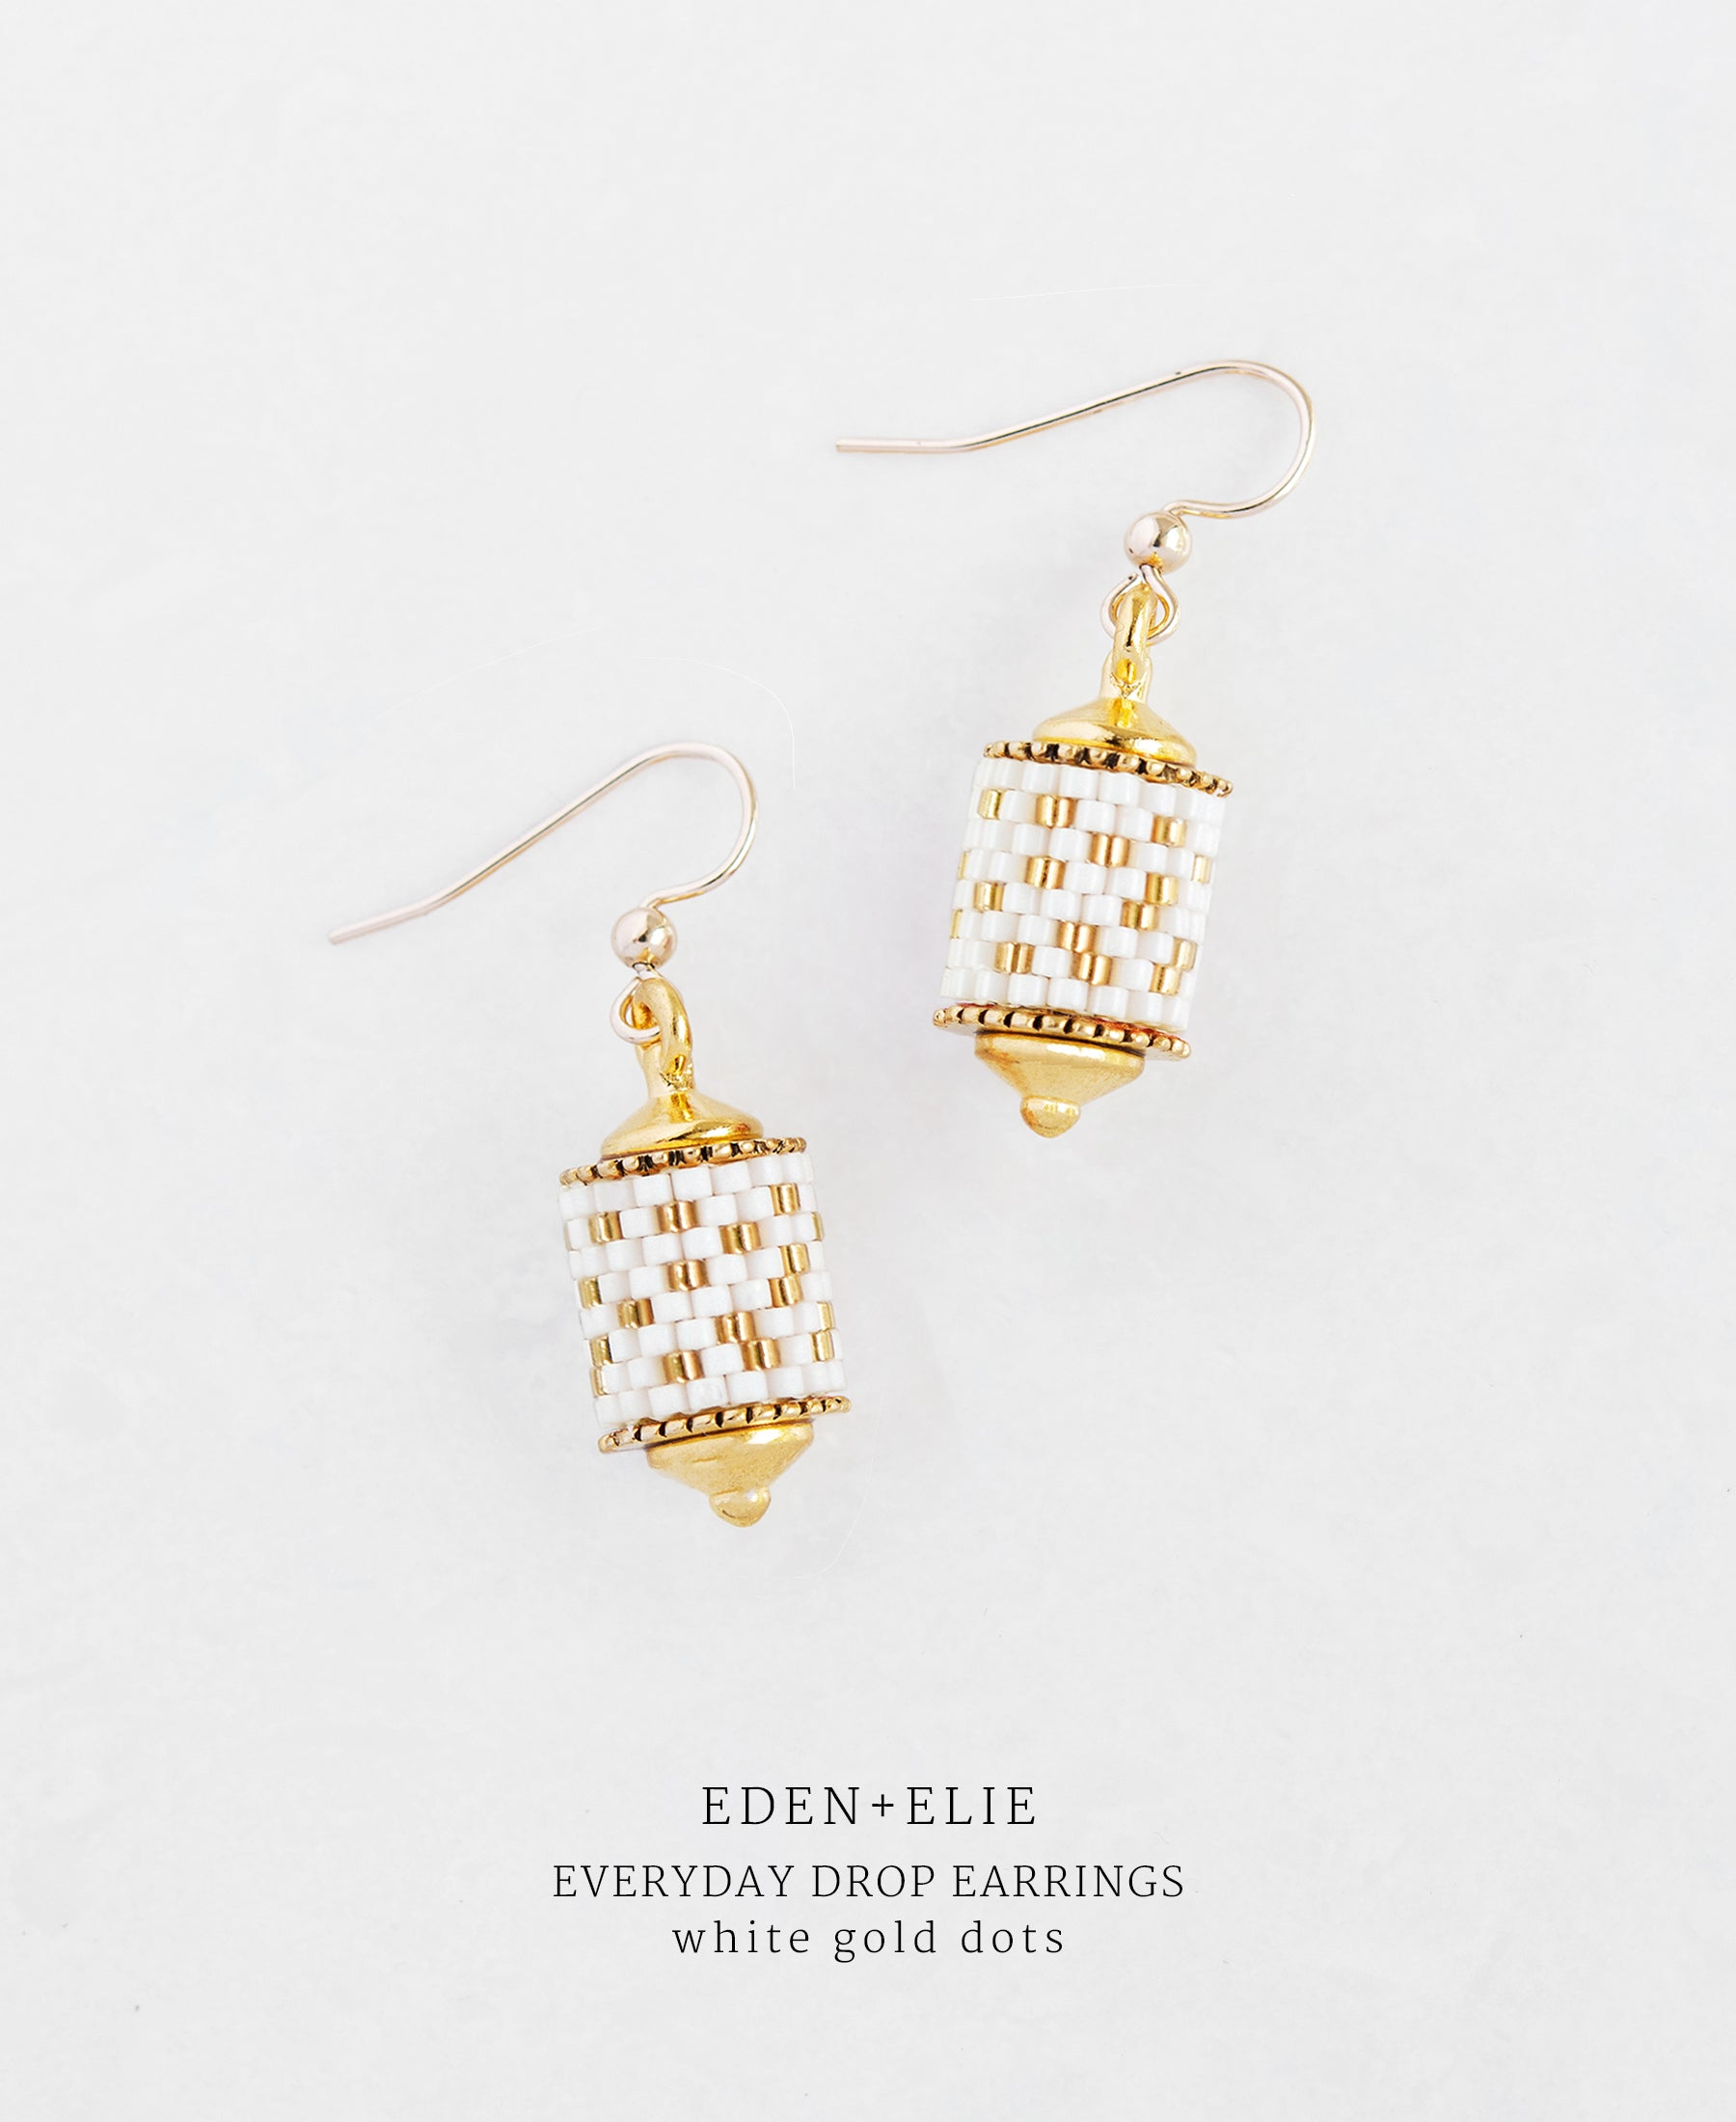 EDEN + ELIE Everyday drop earrings - white gold dots